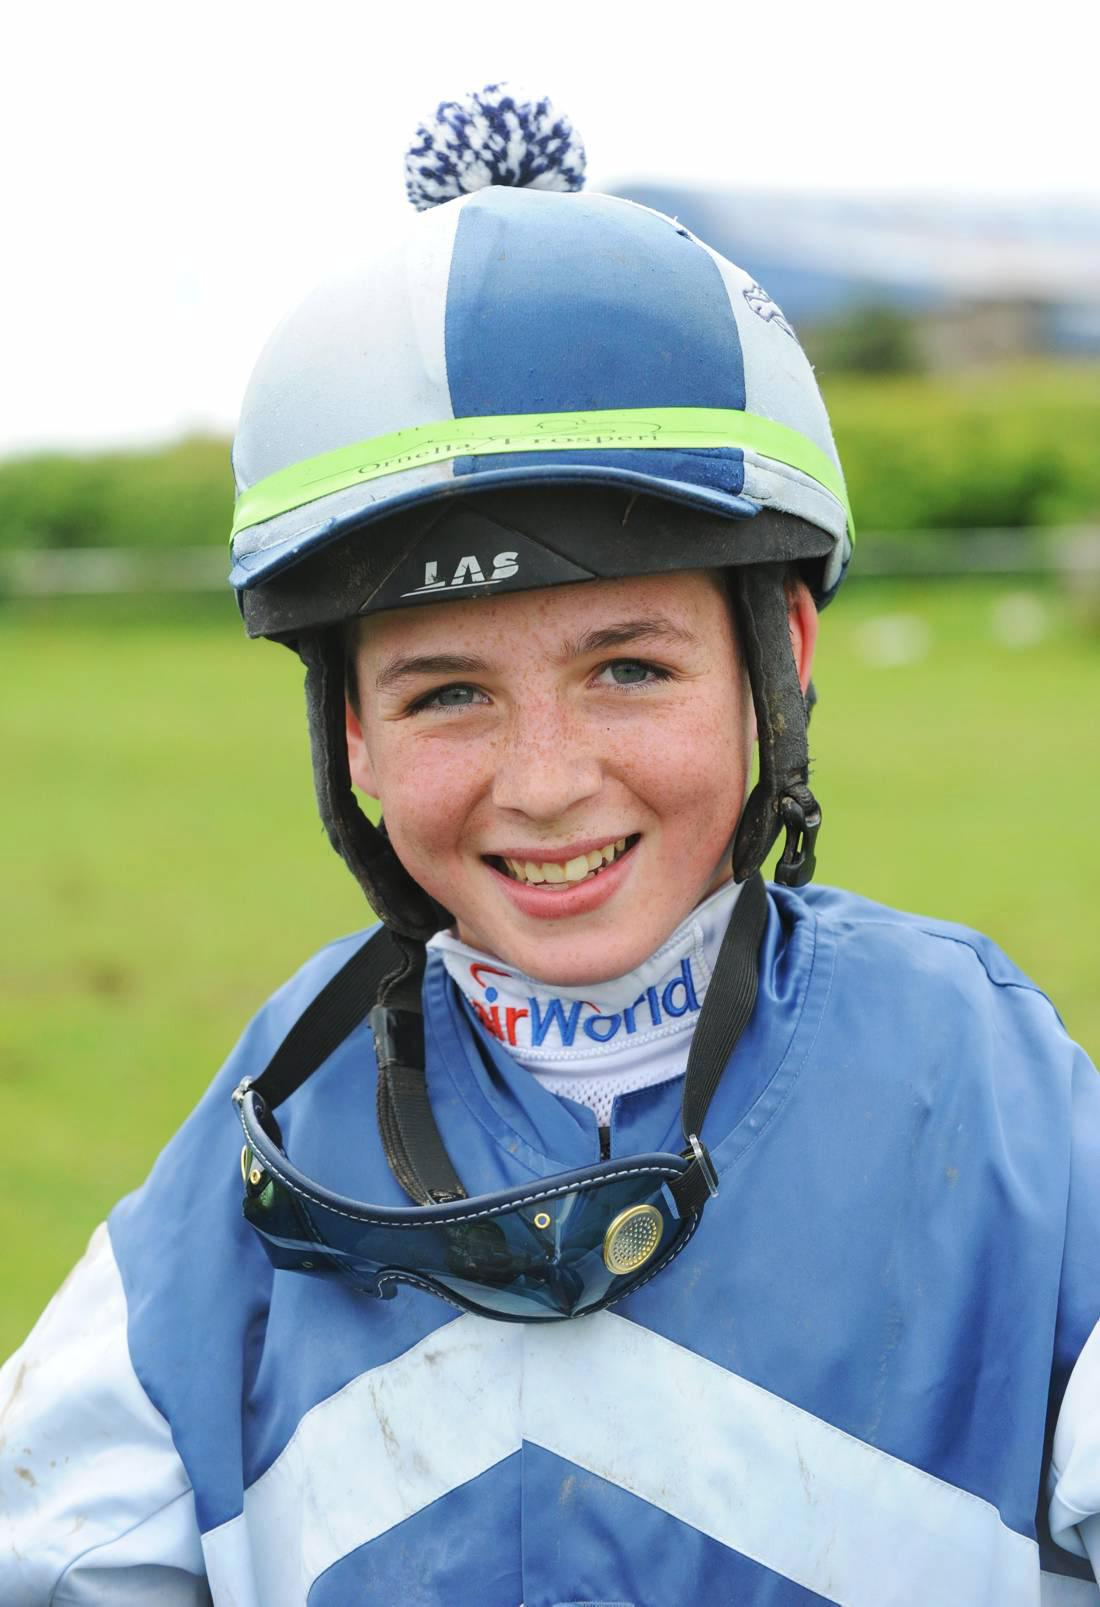 Rossa rides off with Christmas treble